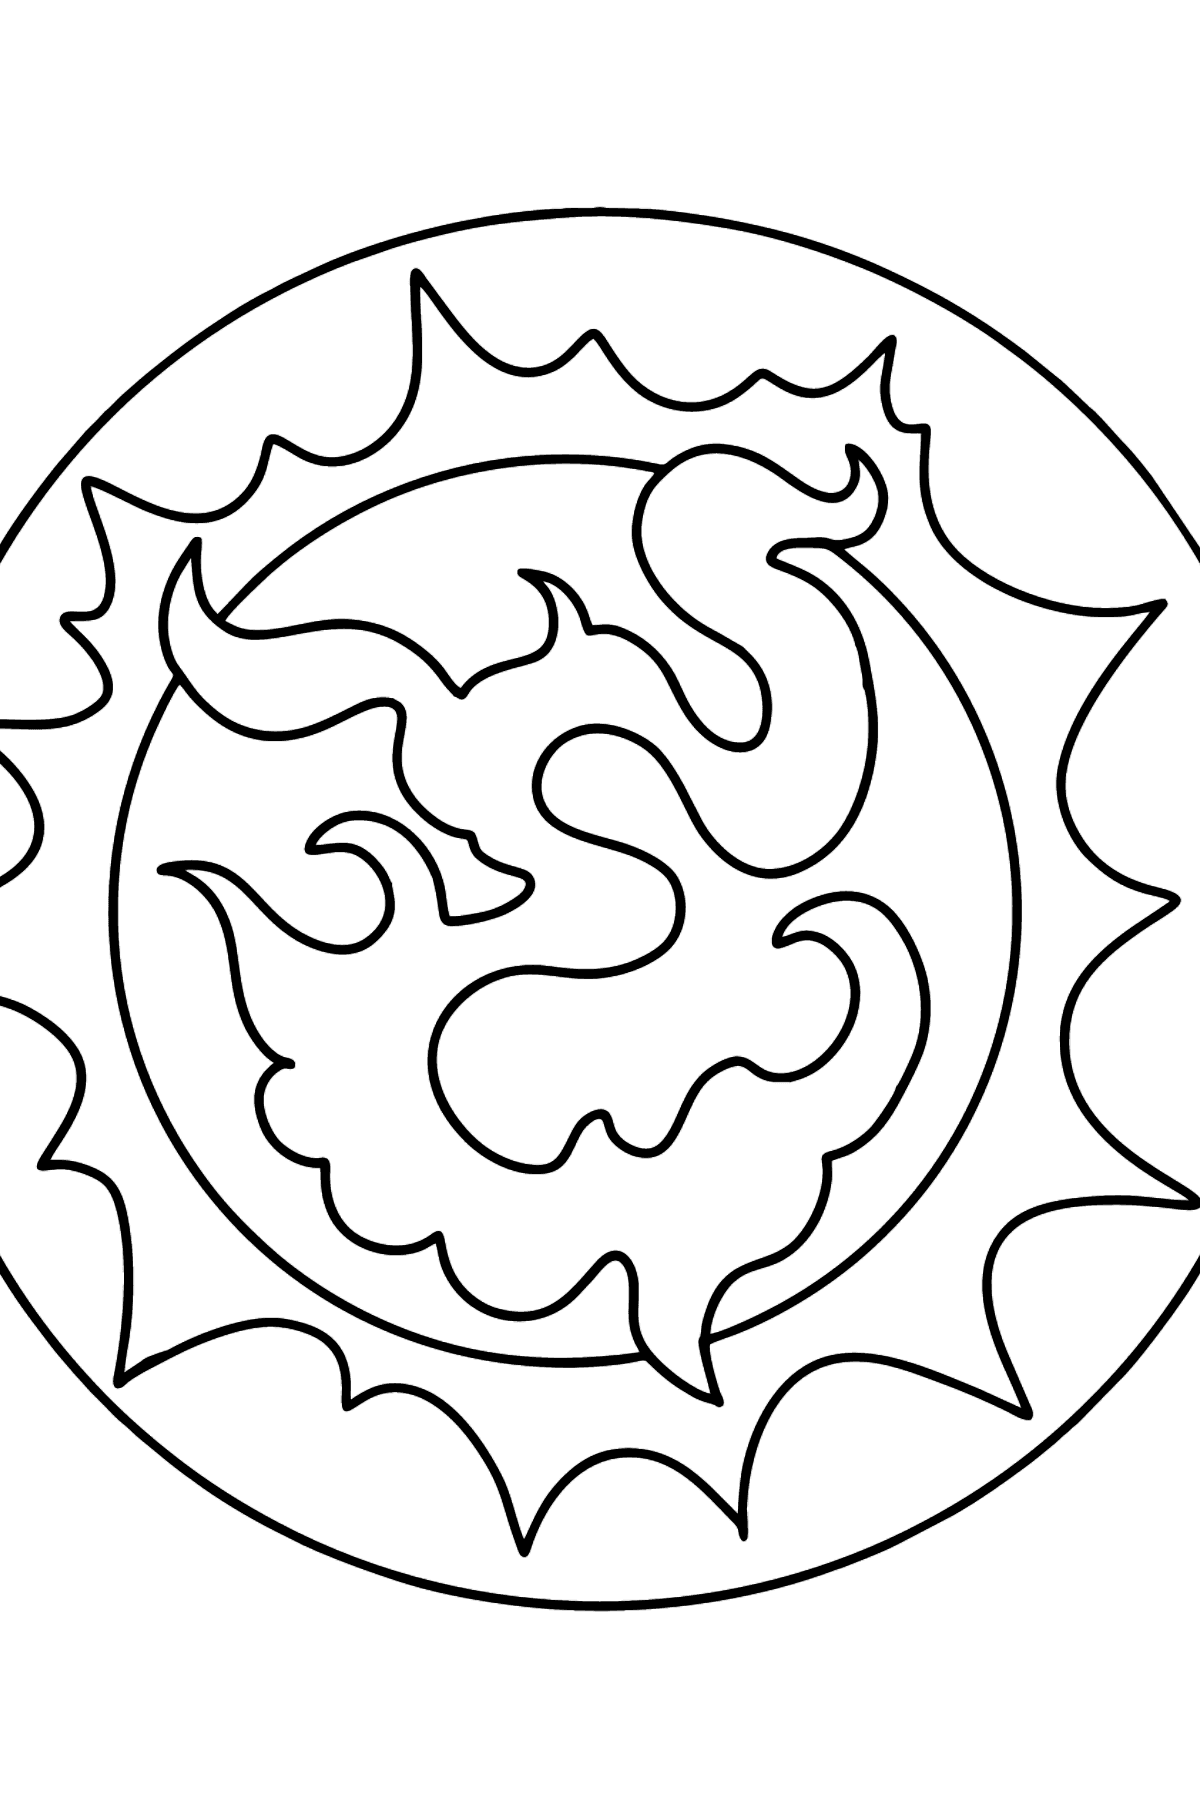 Star coloring page - Coloring Pages for Kids